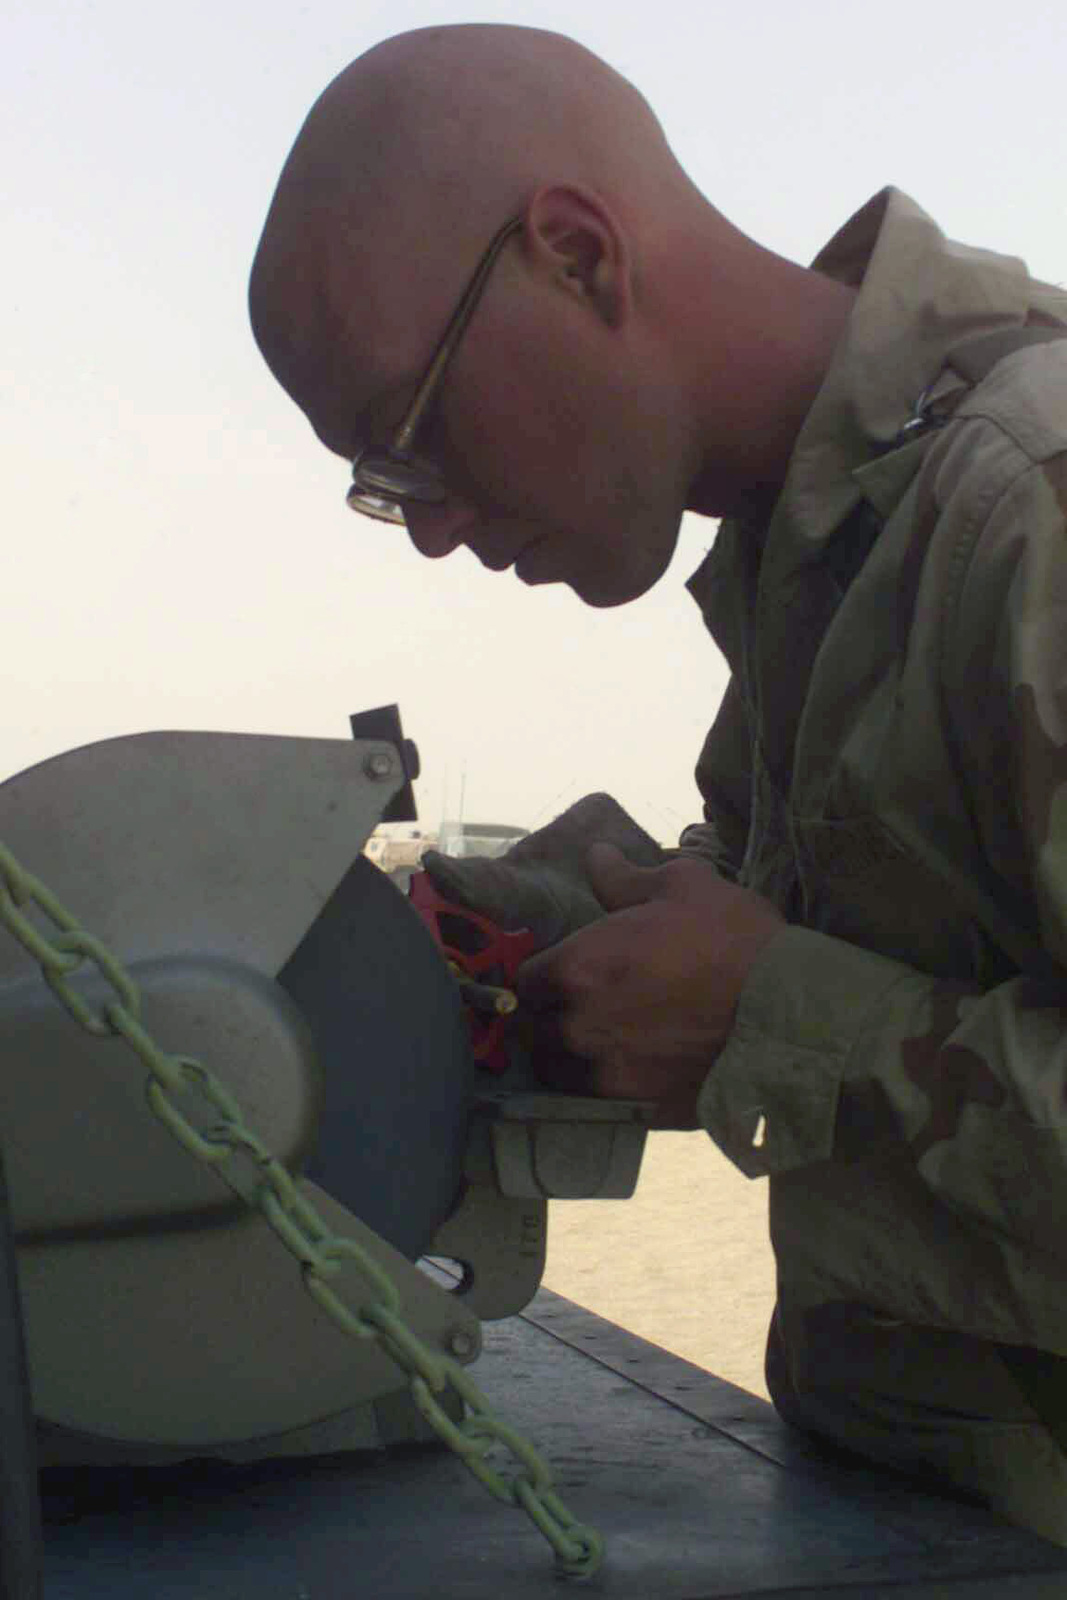 US Marine Corps (USMC) Lance Corporal (LCPL) Adam Wilson, Headquarters Company, Maintenance Platoon, 1ST Tanks, fixes a twist knob for pipes in the showers at Camp Coyote, Kuwait, during Operation ENDURING FREEDOM